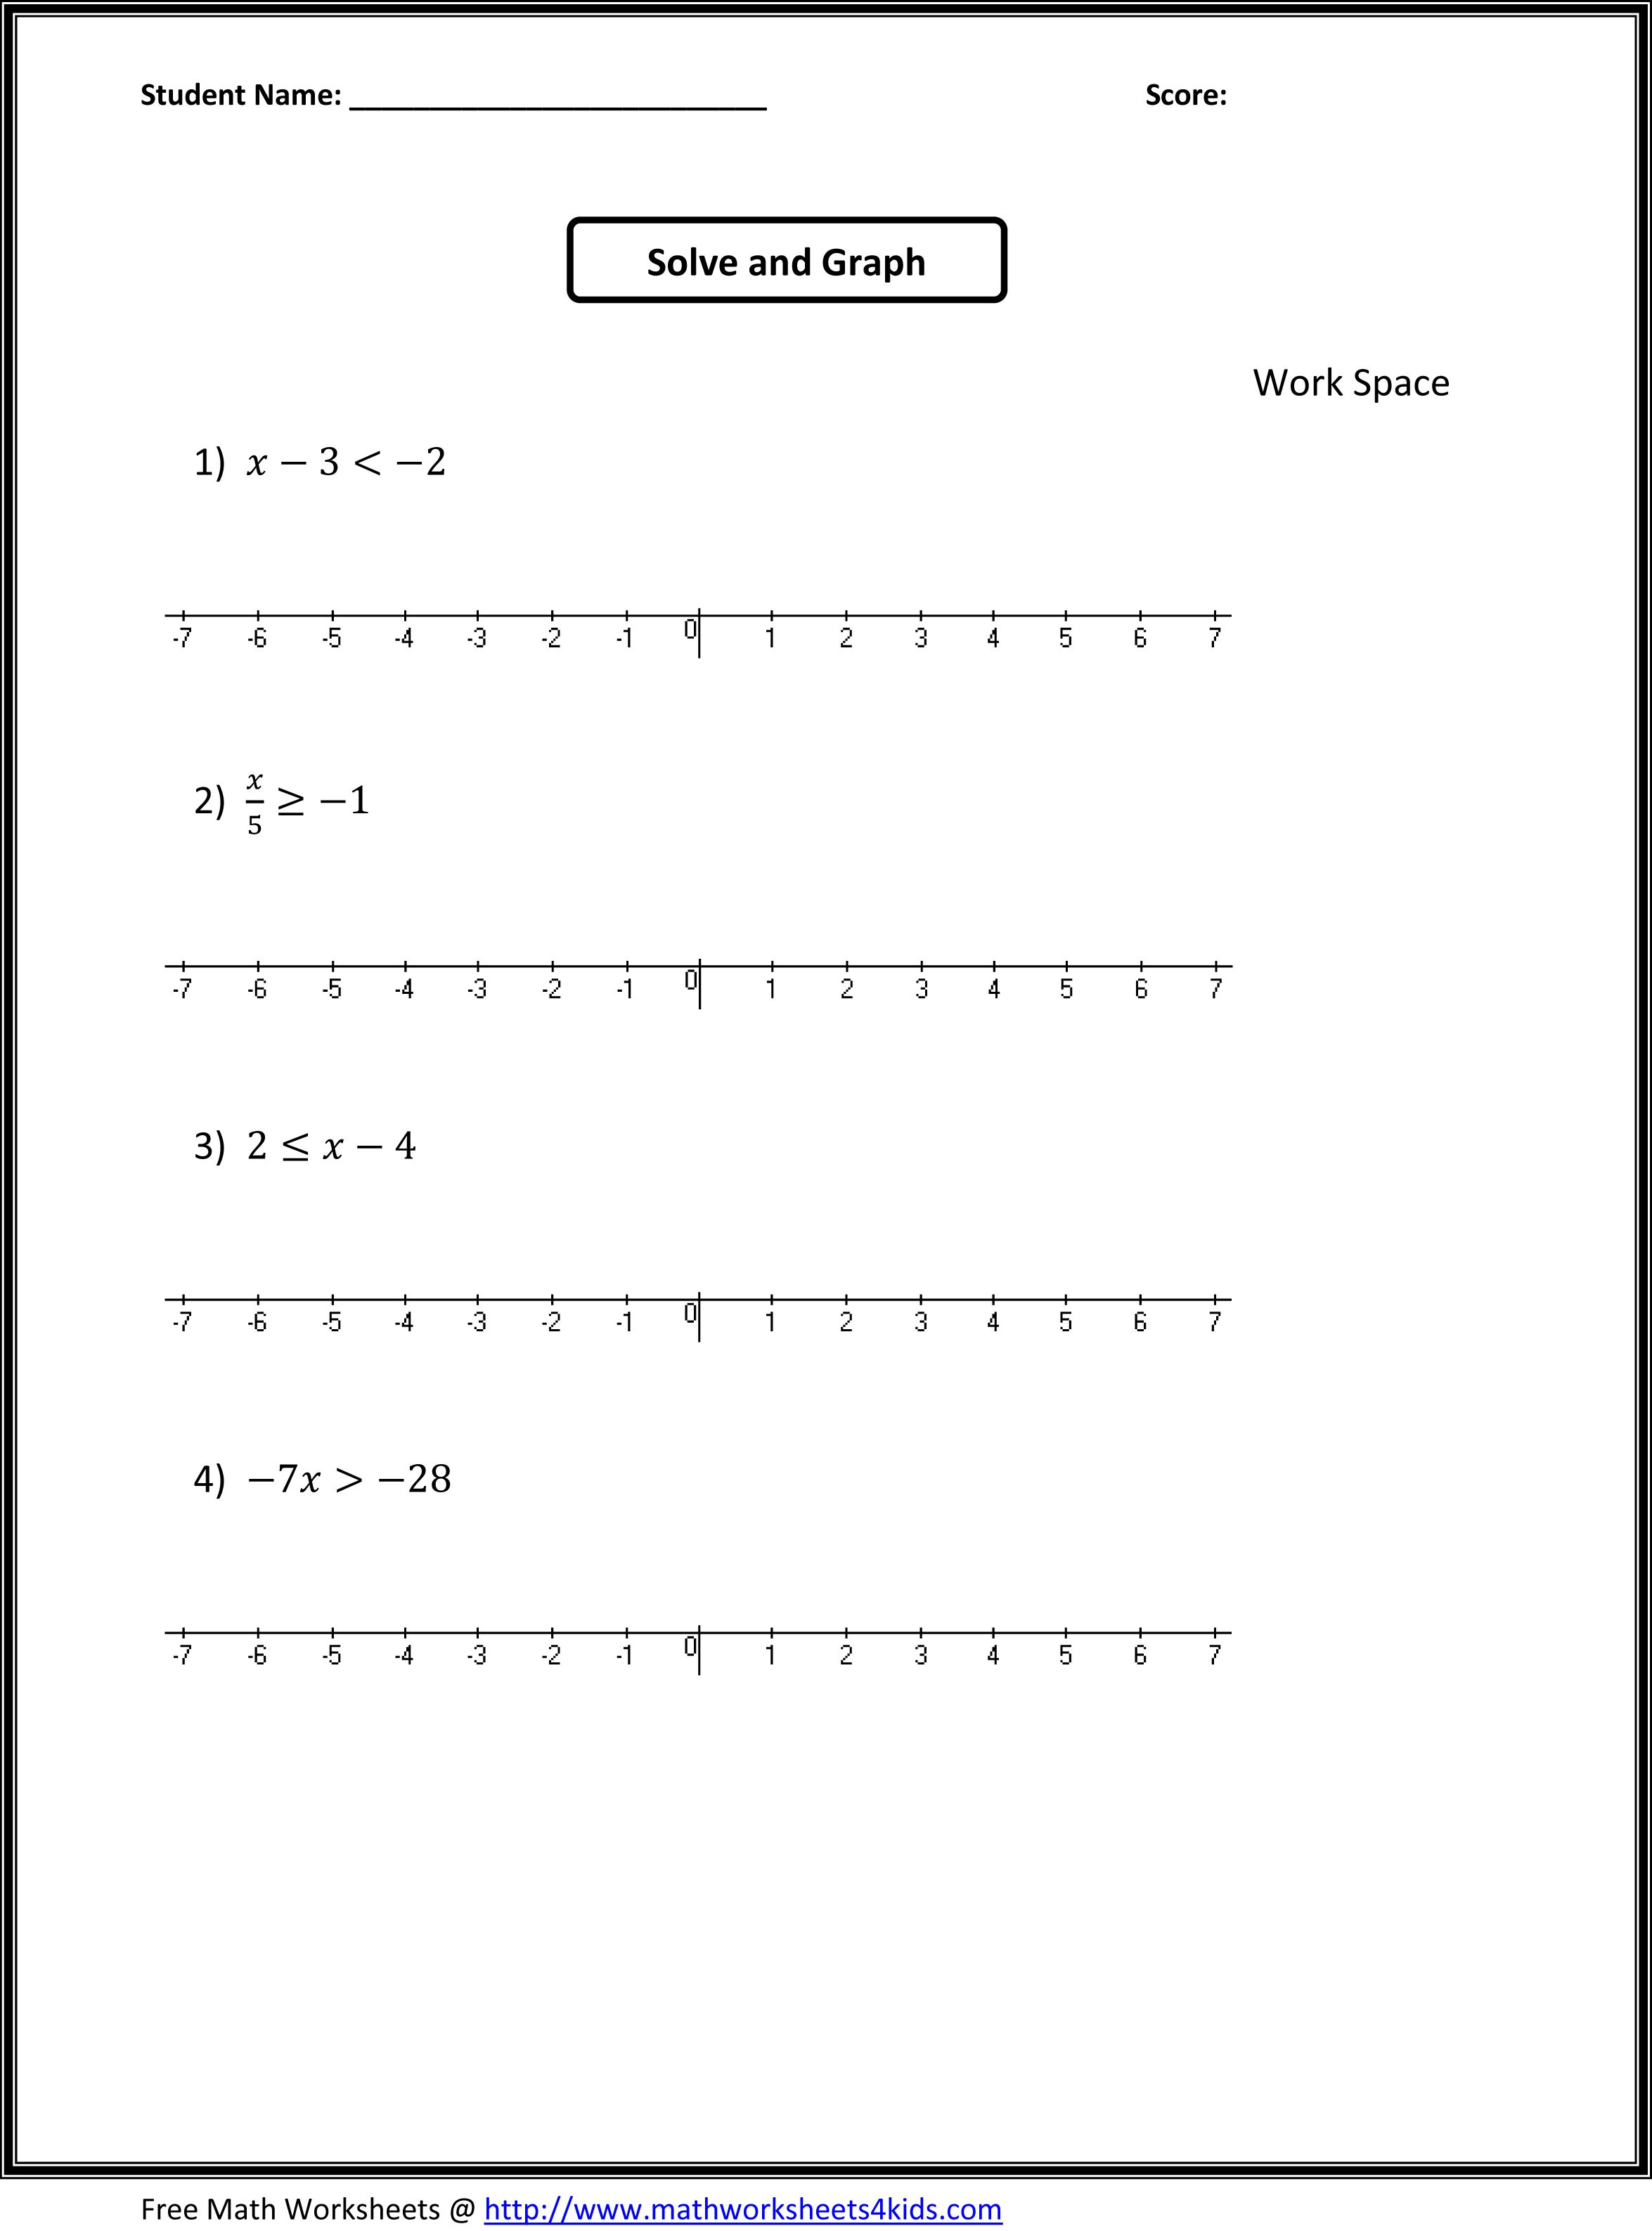 Printables Worksheets For 7th Graders printable 7th grade math worksheets syndeomedia 1000 images about on pinterest activities math